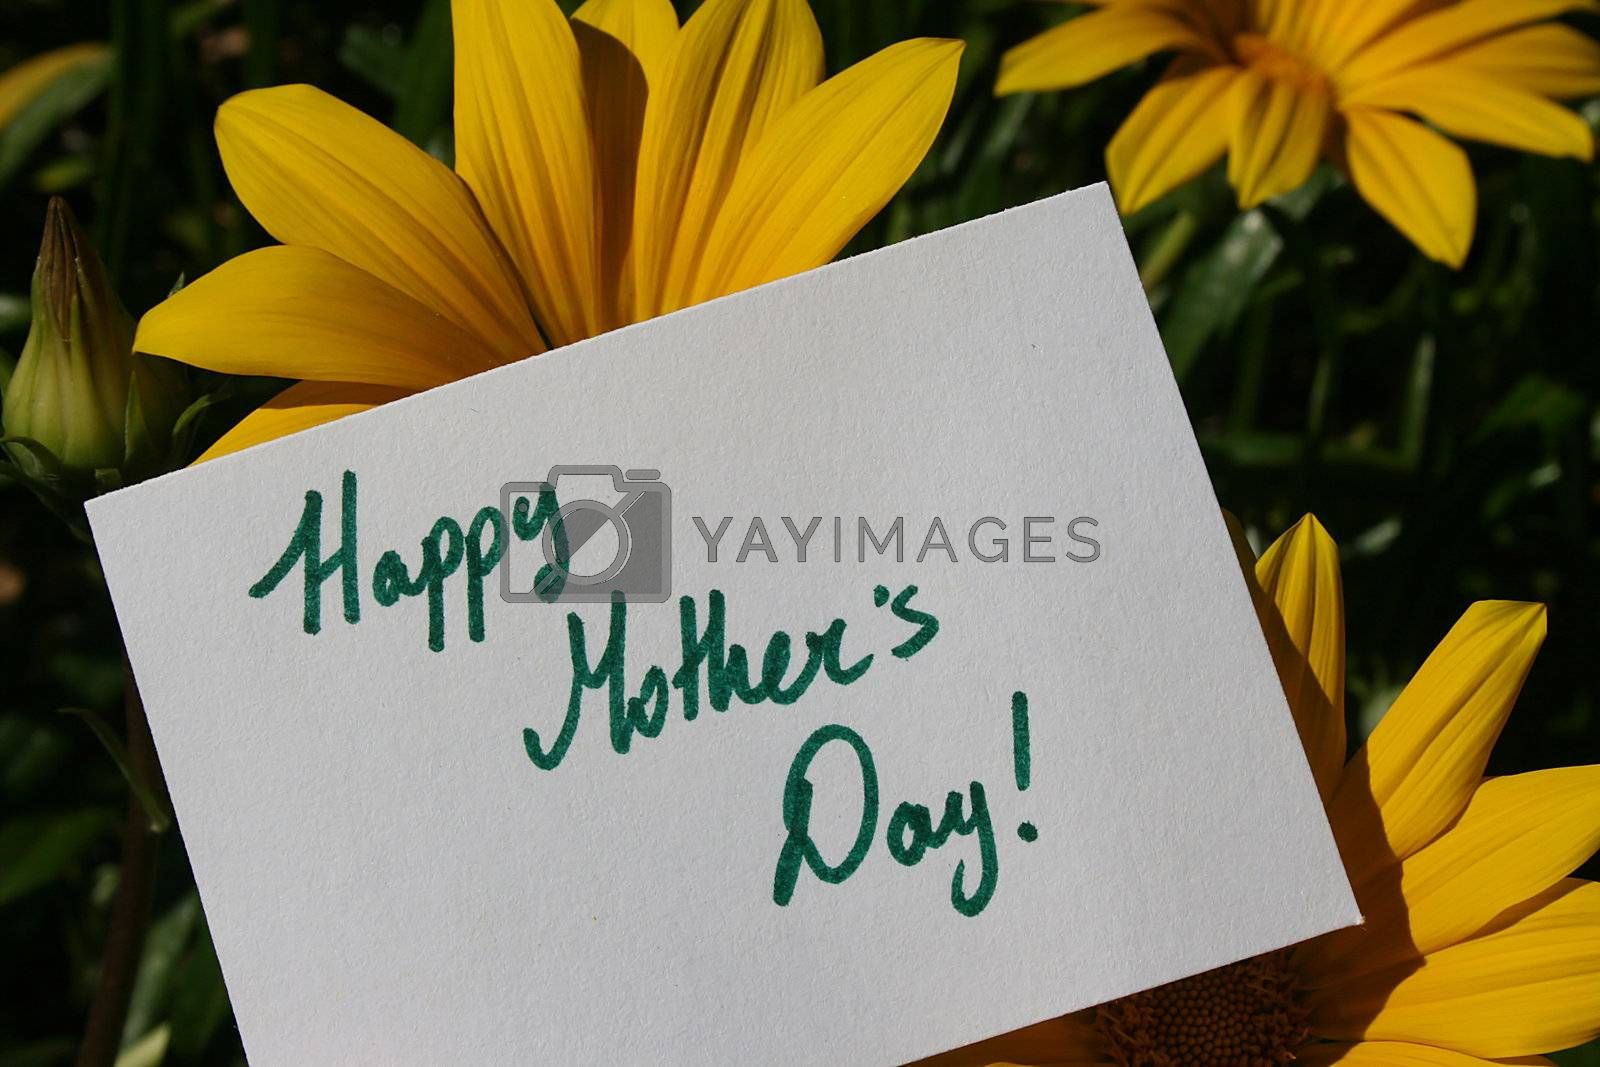 Flowers with a Happy Mothers Day text on a white paper sign.